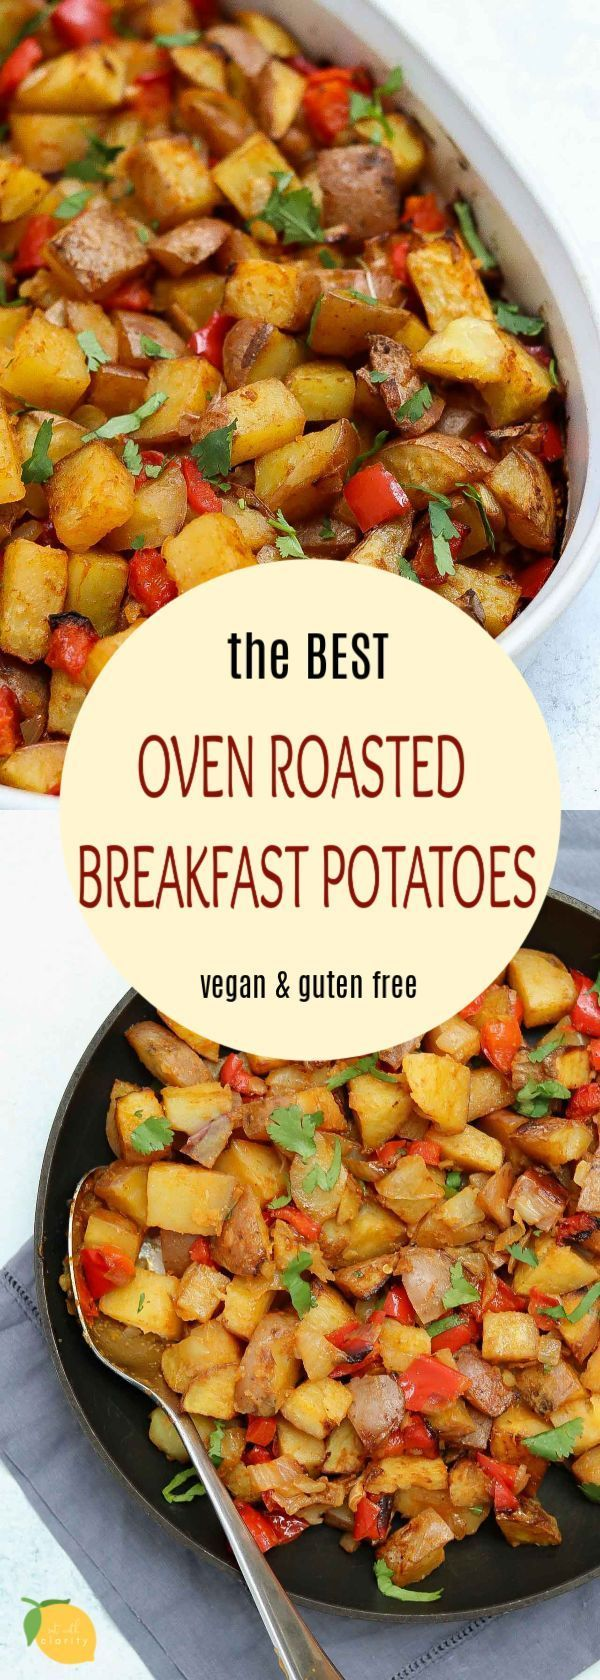 Easy and delicious, these vegan roasted breakfast potatoes are the perfect recipe for your weekend morning brunch!